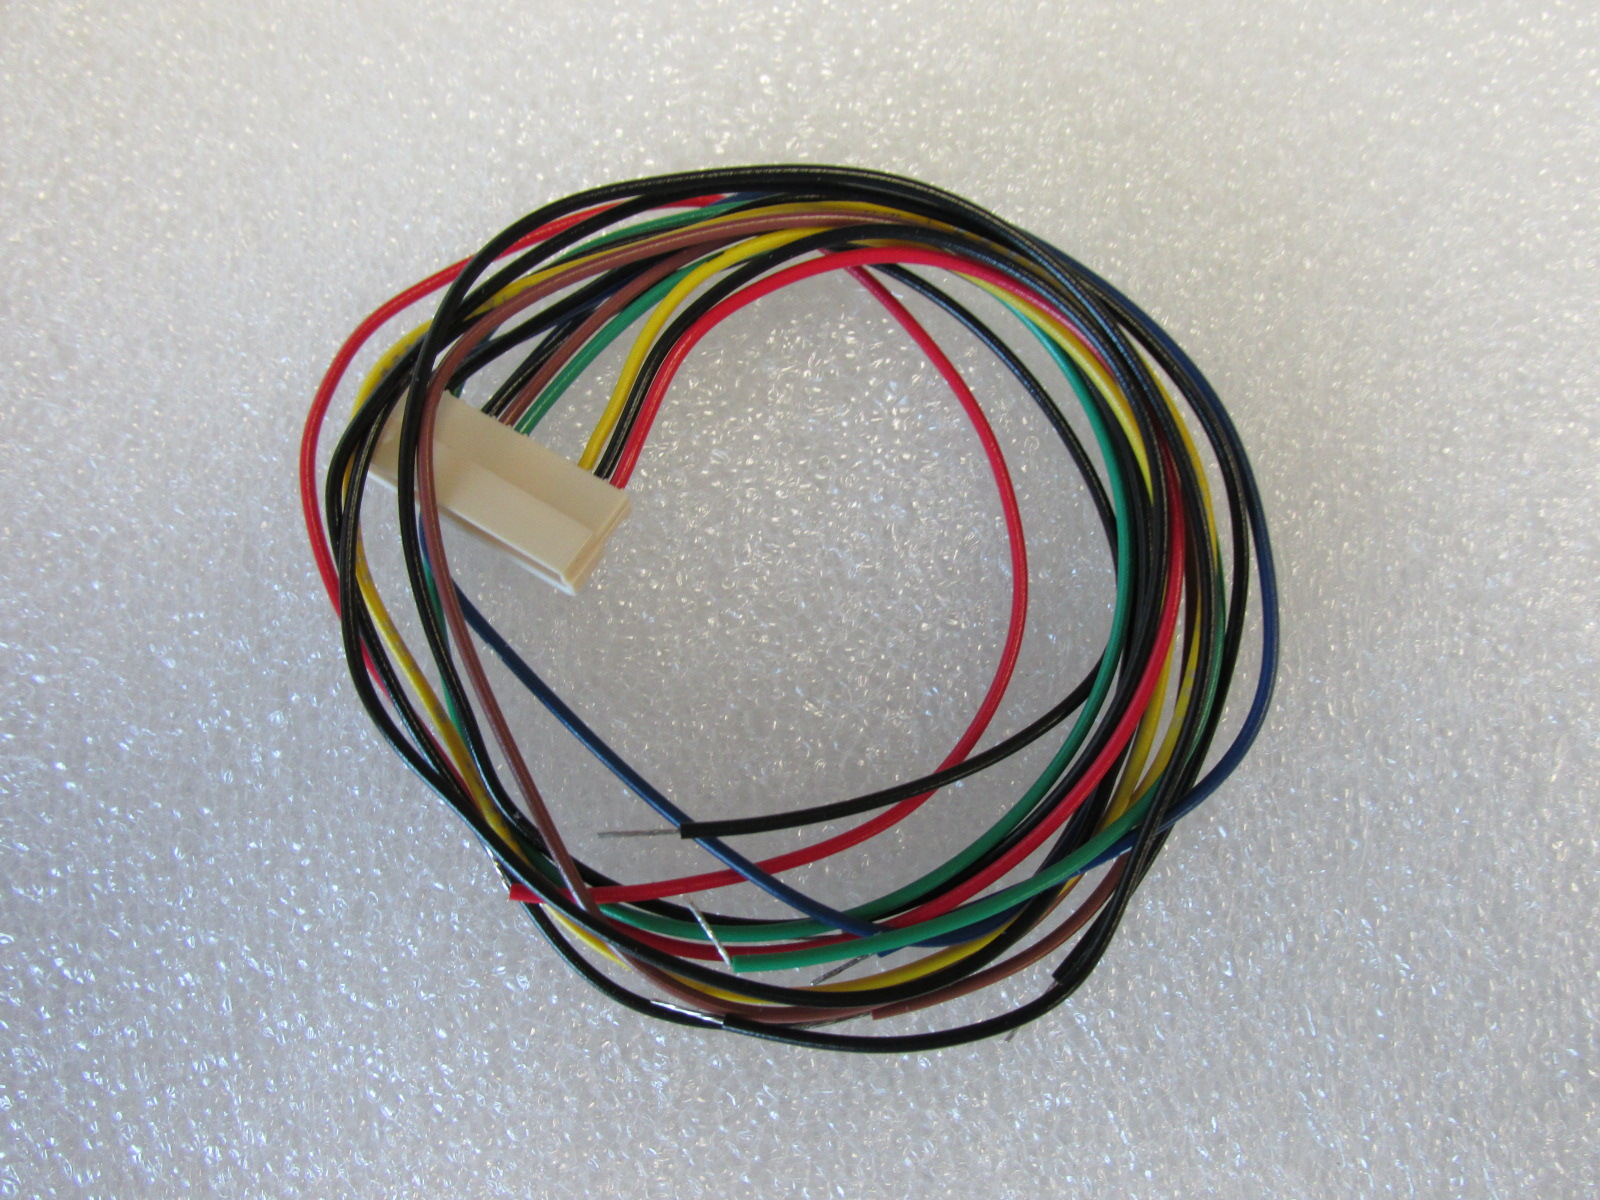 2000AS_thermal_engine_wiring_hraness1 2000as thermal engine 0518 spi wholesale Wiring Harness Diagram at readyjetset.co